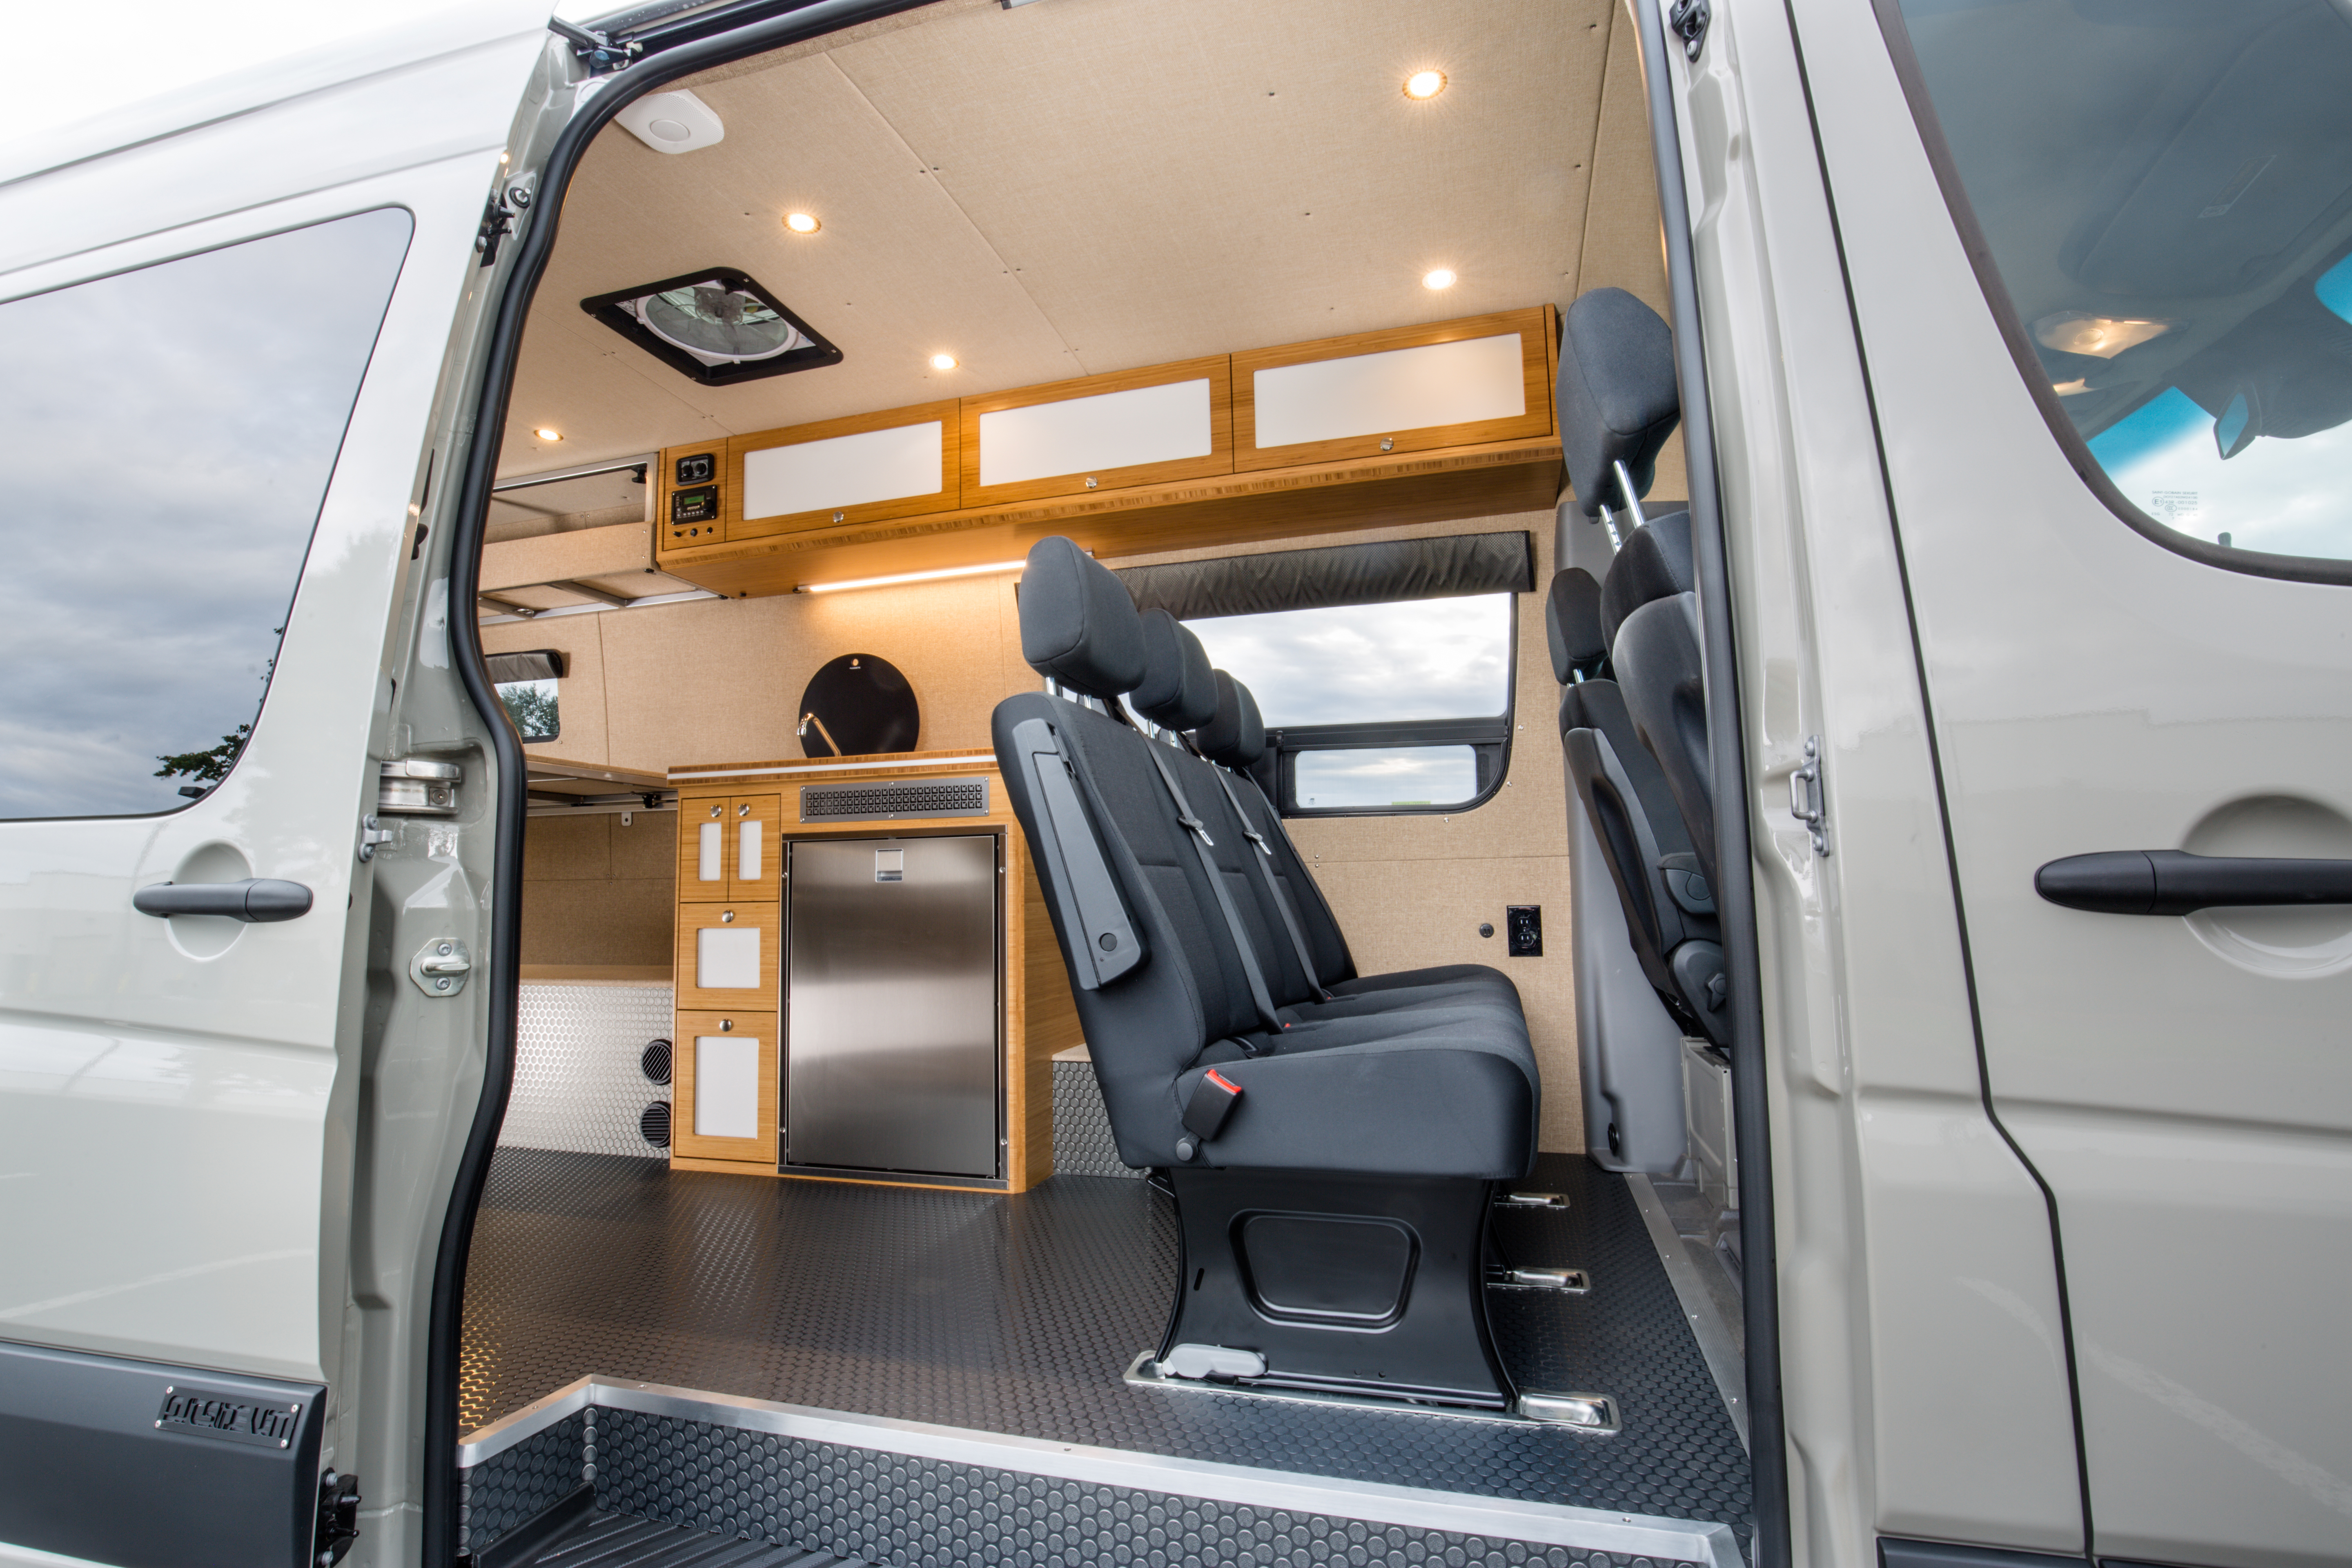 Luxury camper van offers a cool oasis for two